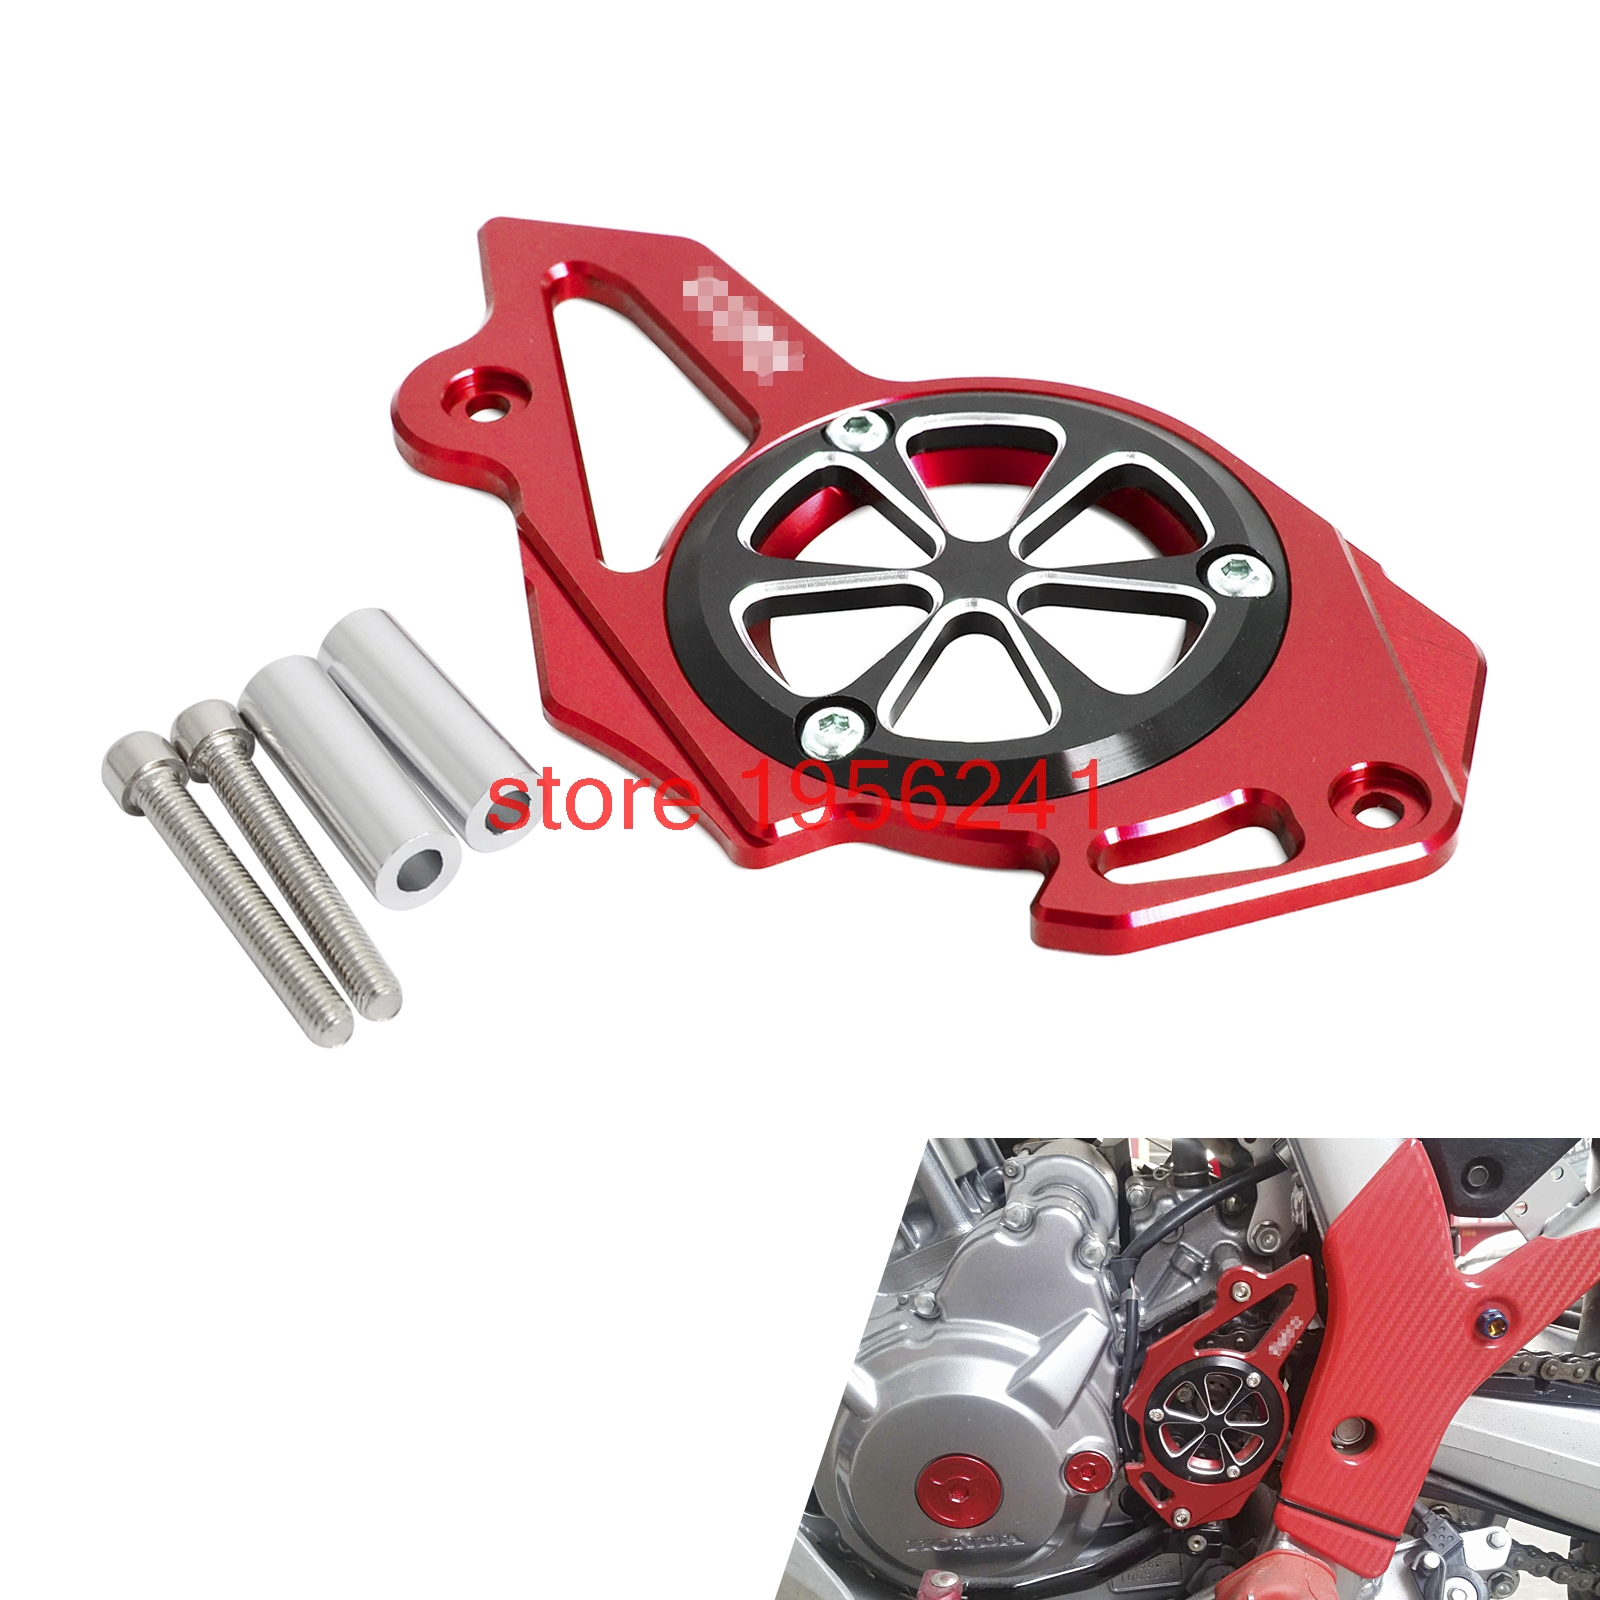 For Honda CRF250L CRF250M 2012 2013 2014 2015 CRF250 L/M CNC Front Sprocket  Chain Cover Guide Guard Protector-in Covers & Ornamental Mouldings from ...